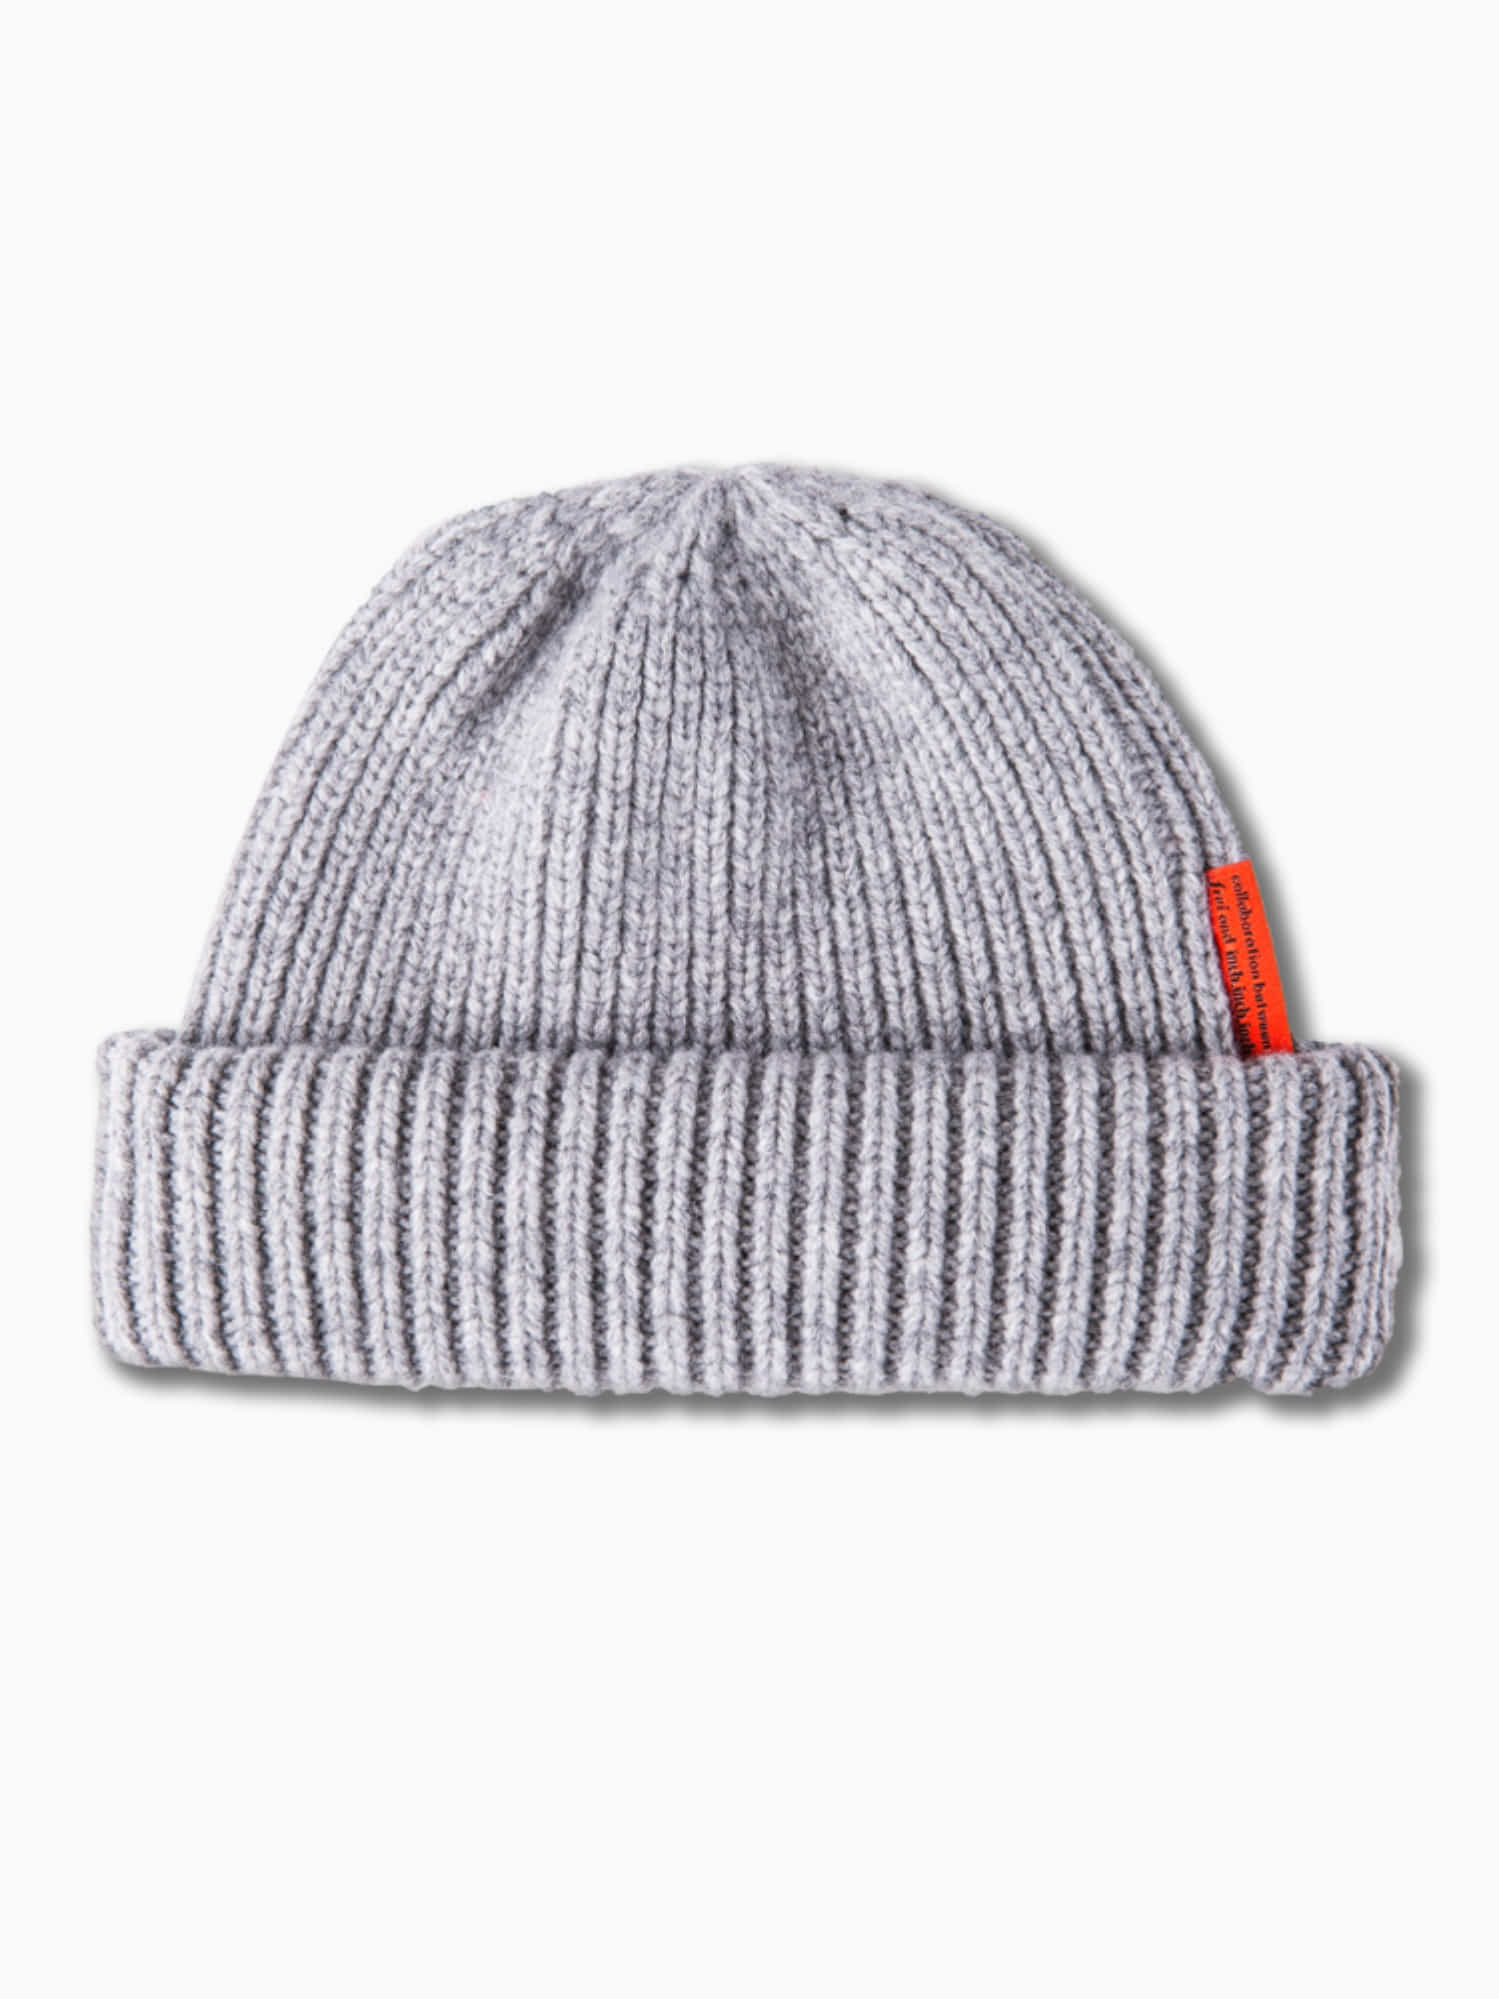 [inch_inch_beanie] Lambs-wool / Light Gray